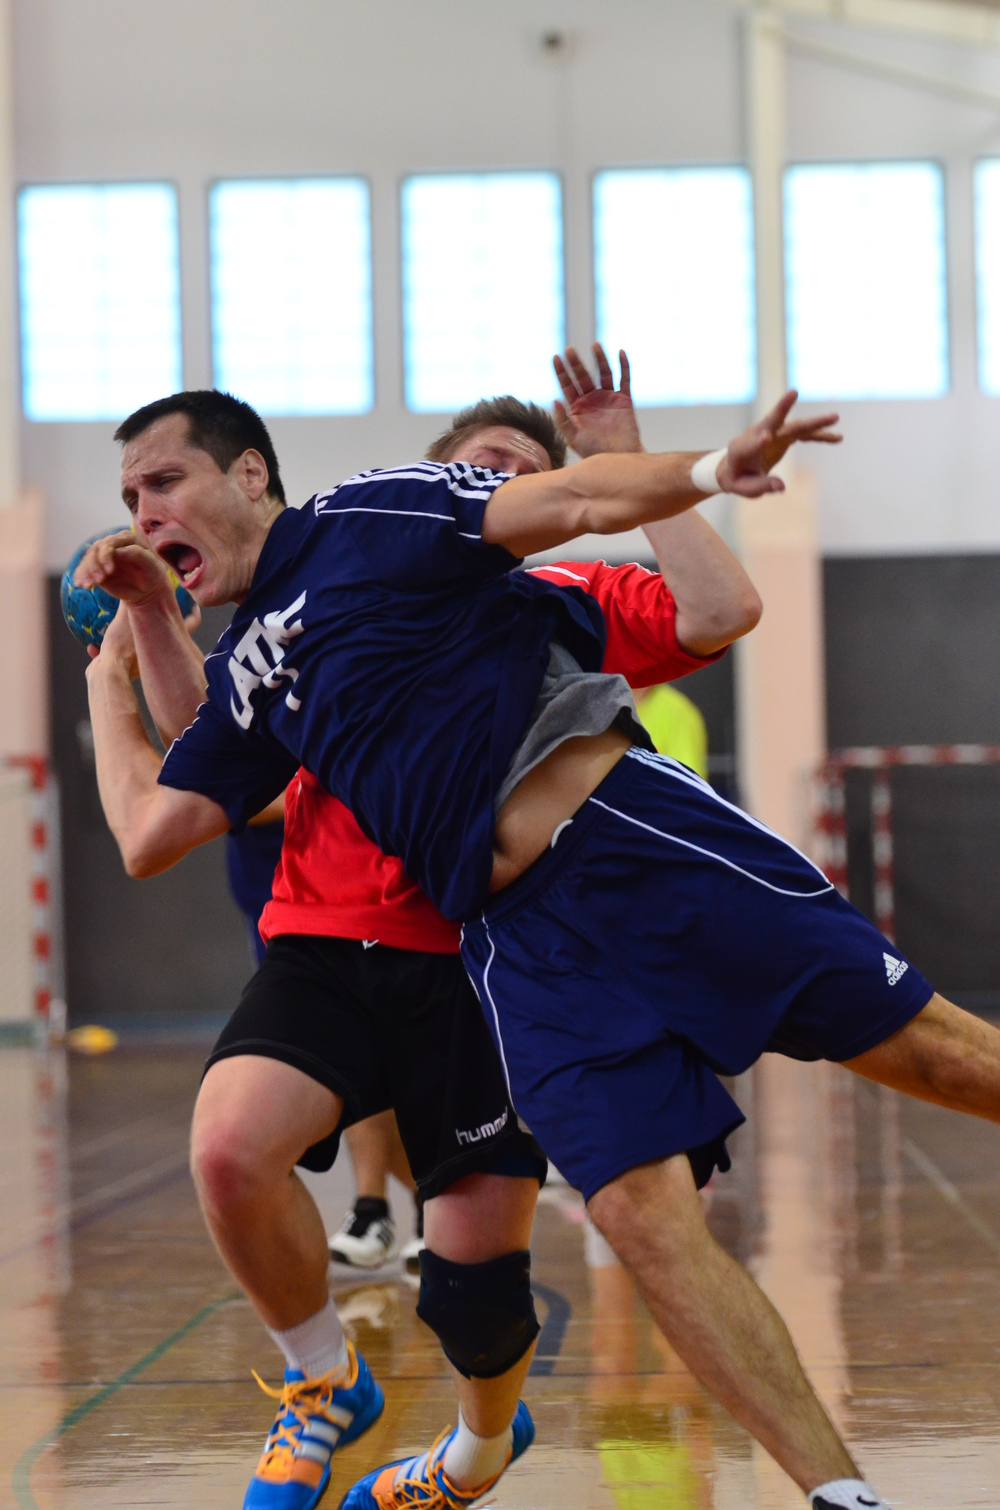 Vladimir Andjelic, LATHC player fighting for the win. Photo by Atticus Overbay, LA Team Handball photographer